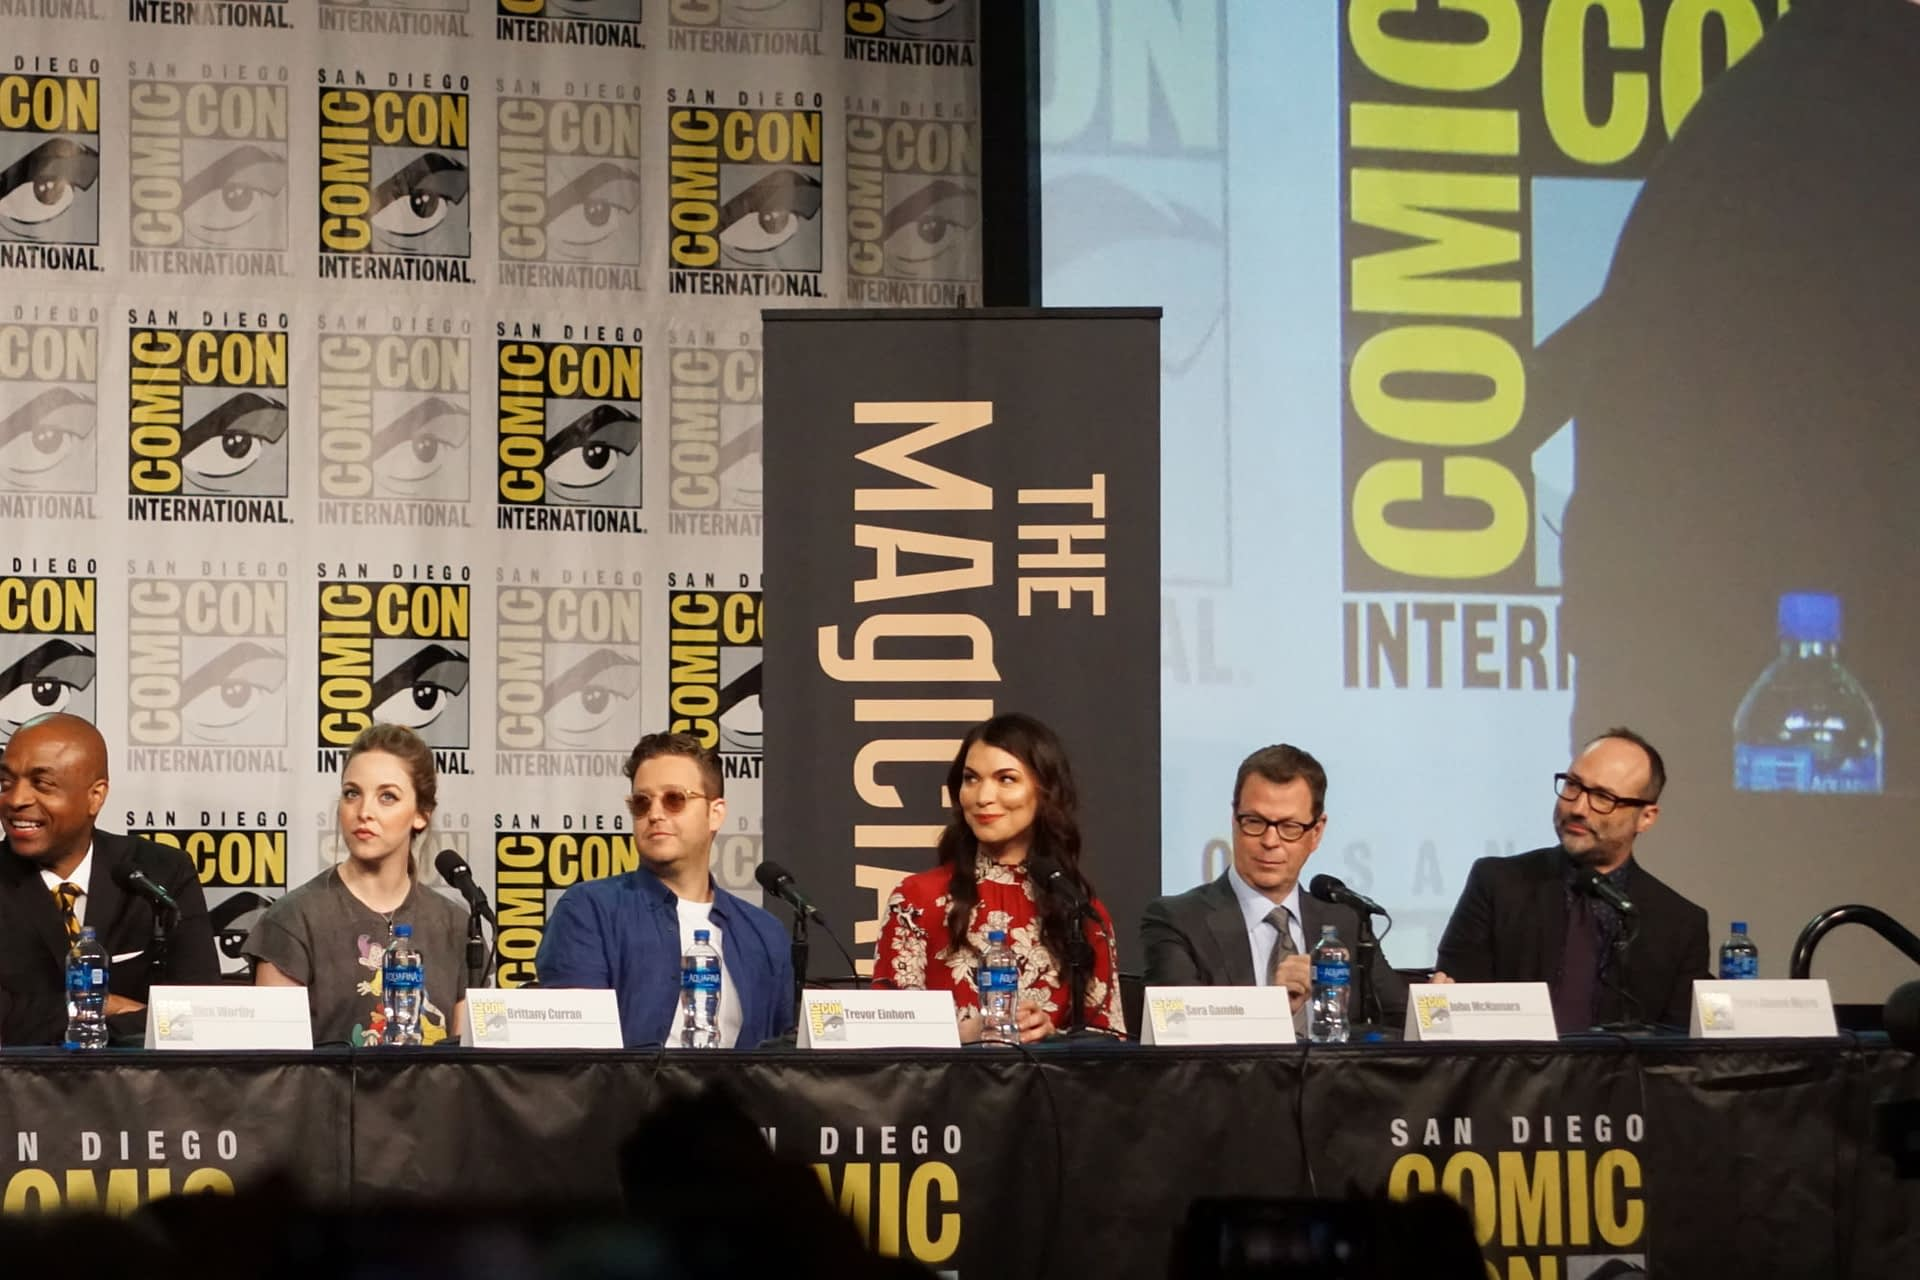 The Magicians SDCC 2019 Panel - With Some MST3K Commentary Thrown In